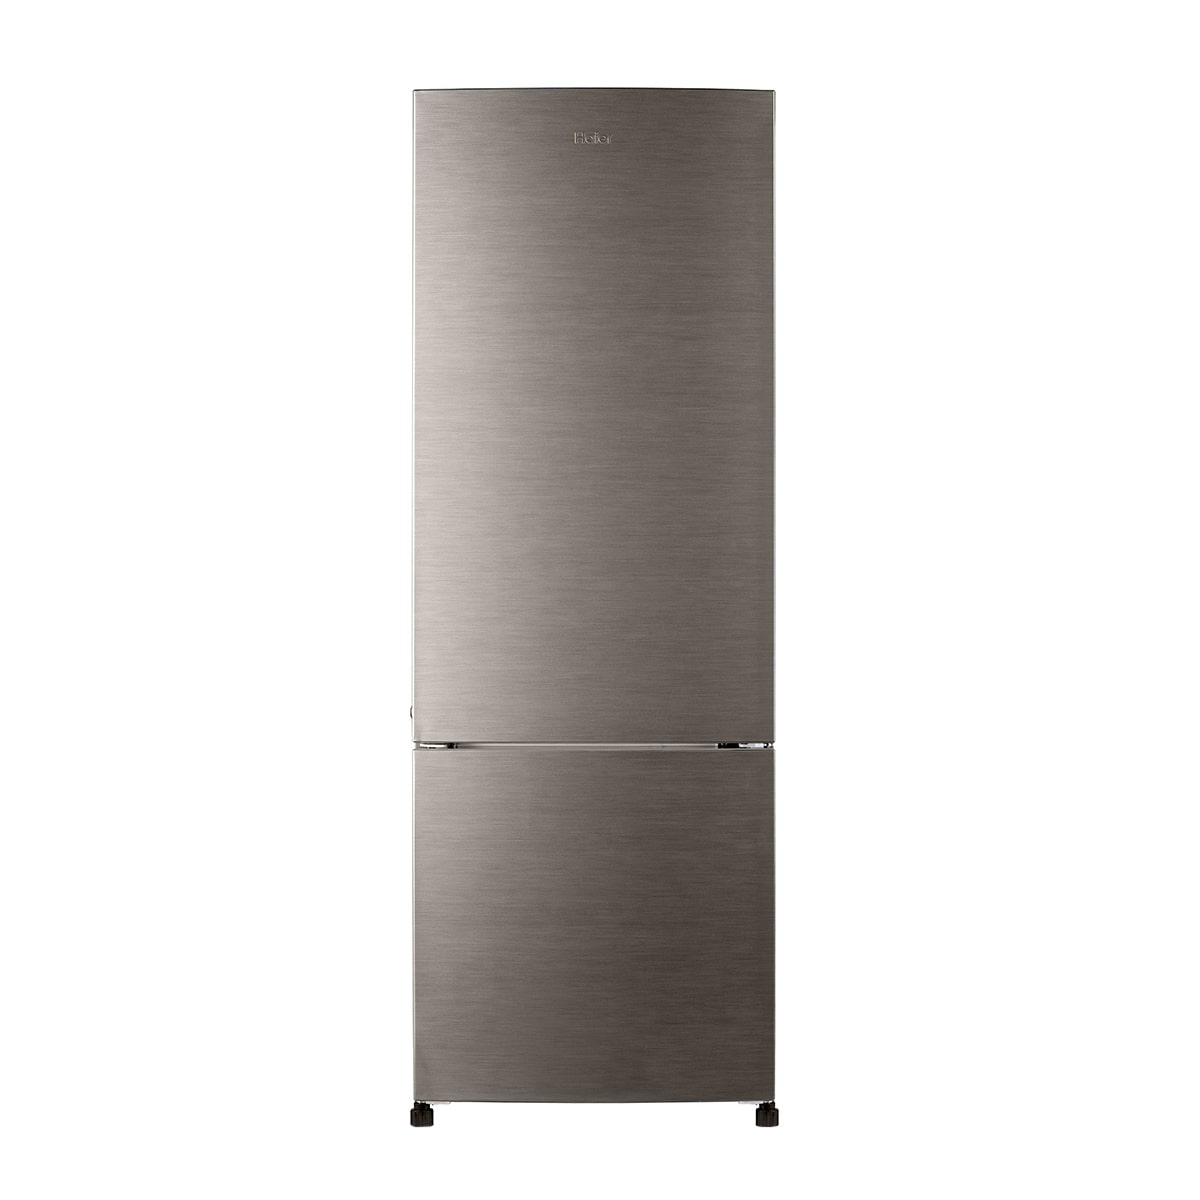 Haier 256 L Double Door Refrigerator (HRB-2763BS-E)